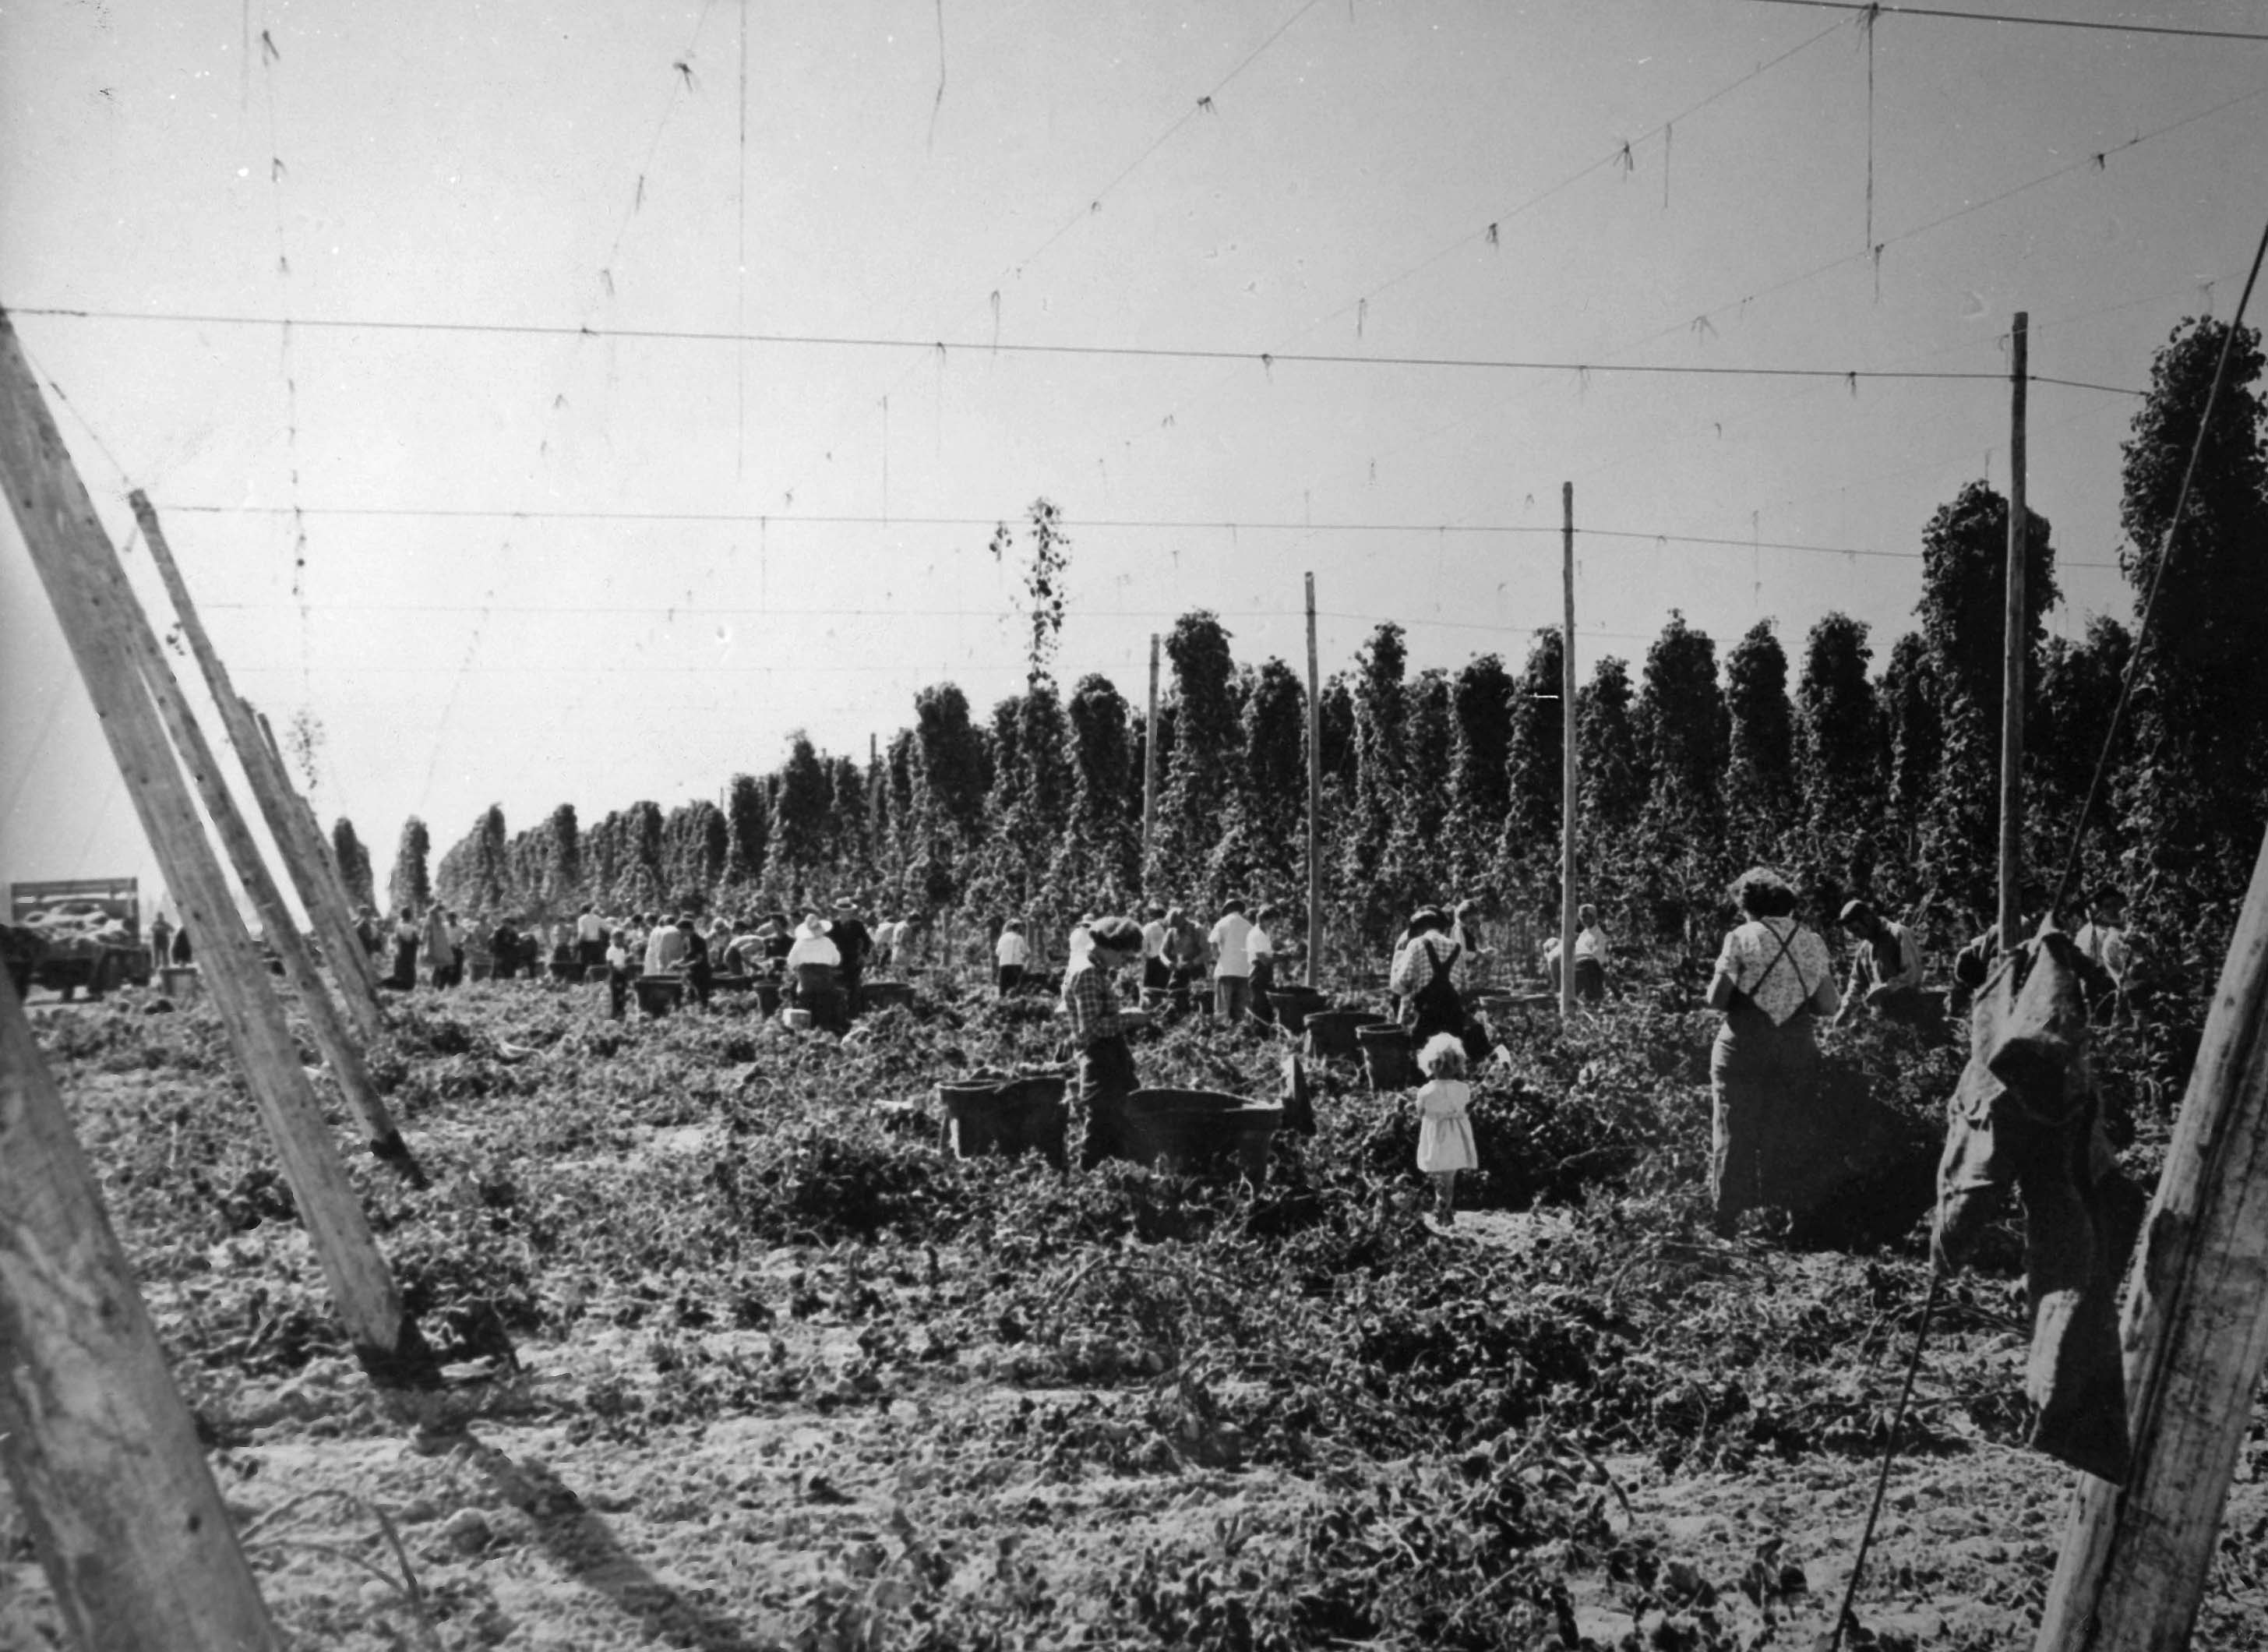 Black and white photograph of children and adults picking hops in a field.